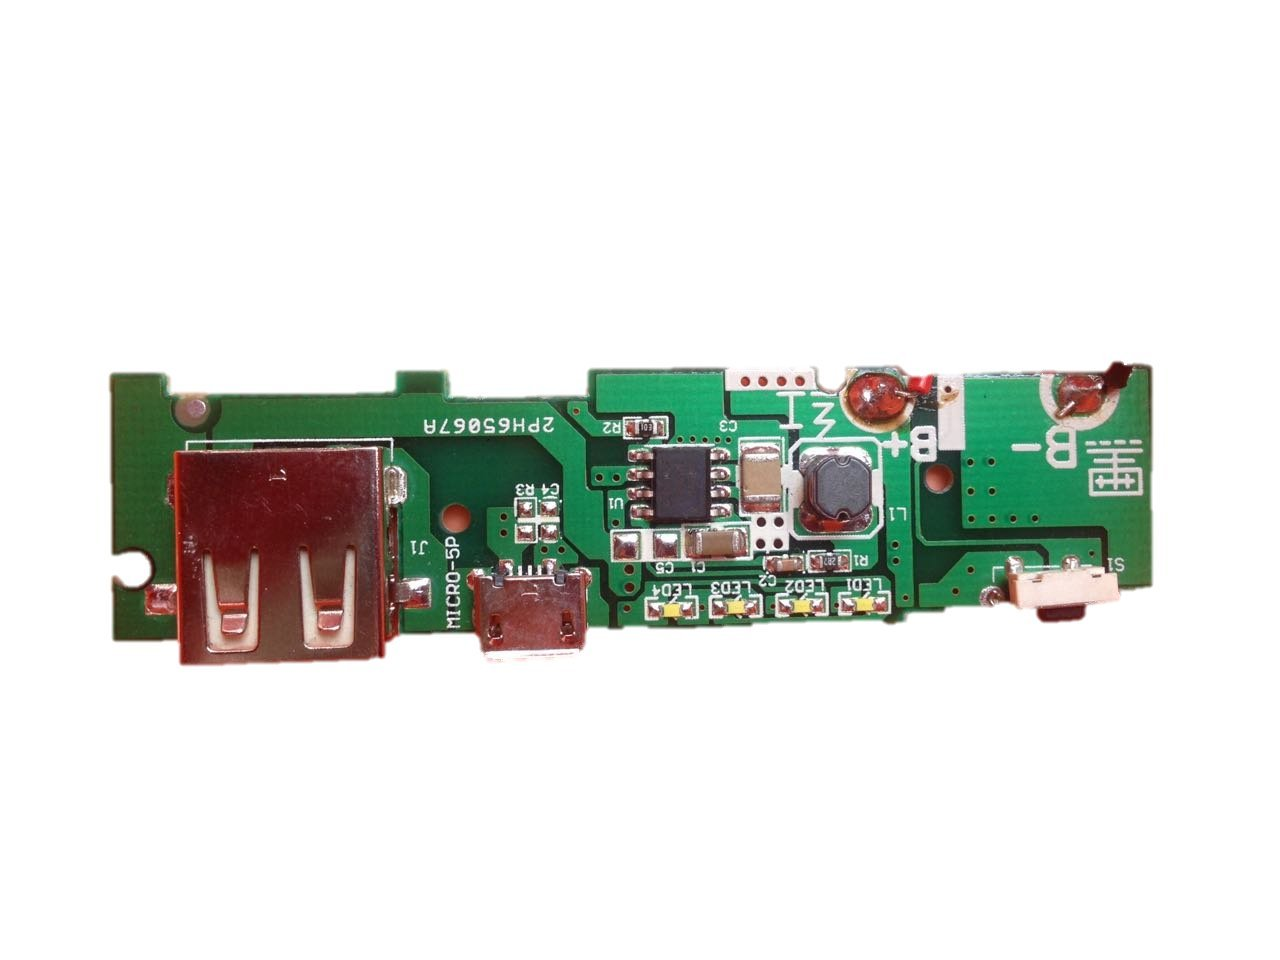 Buenasol Lithim Battery Charger Powerbank Circuit Pcb Board Cellphone Lithium Ion Of Lm317 Industrial Scientific